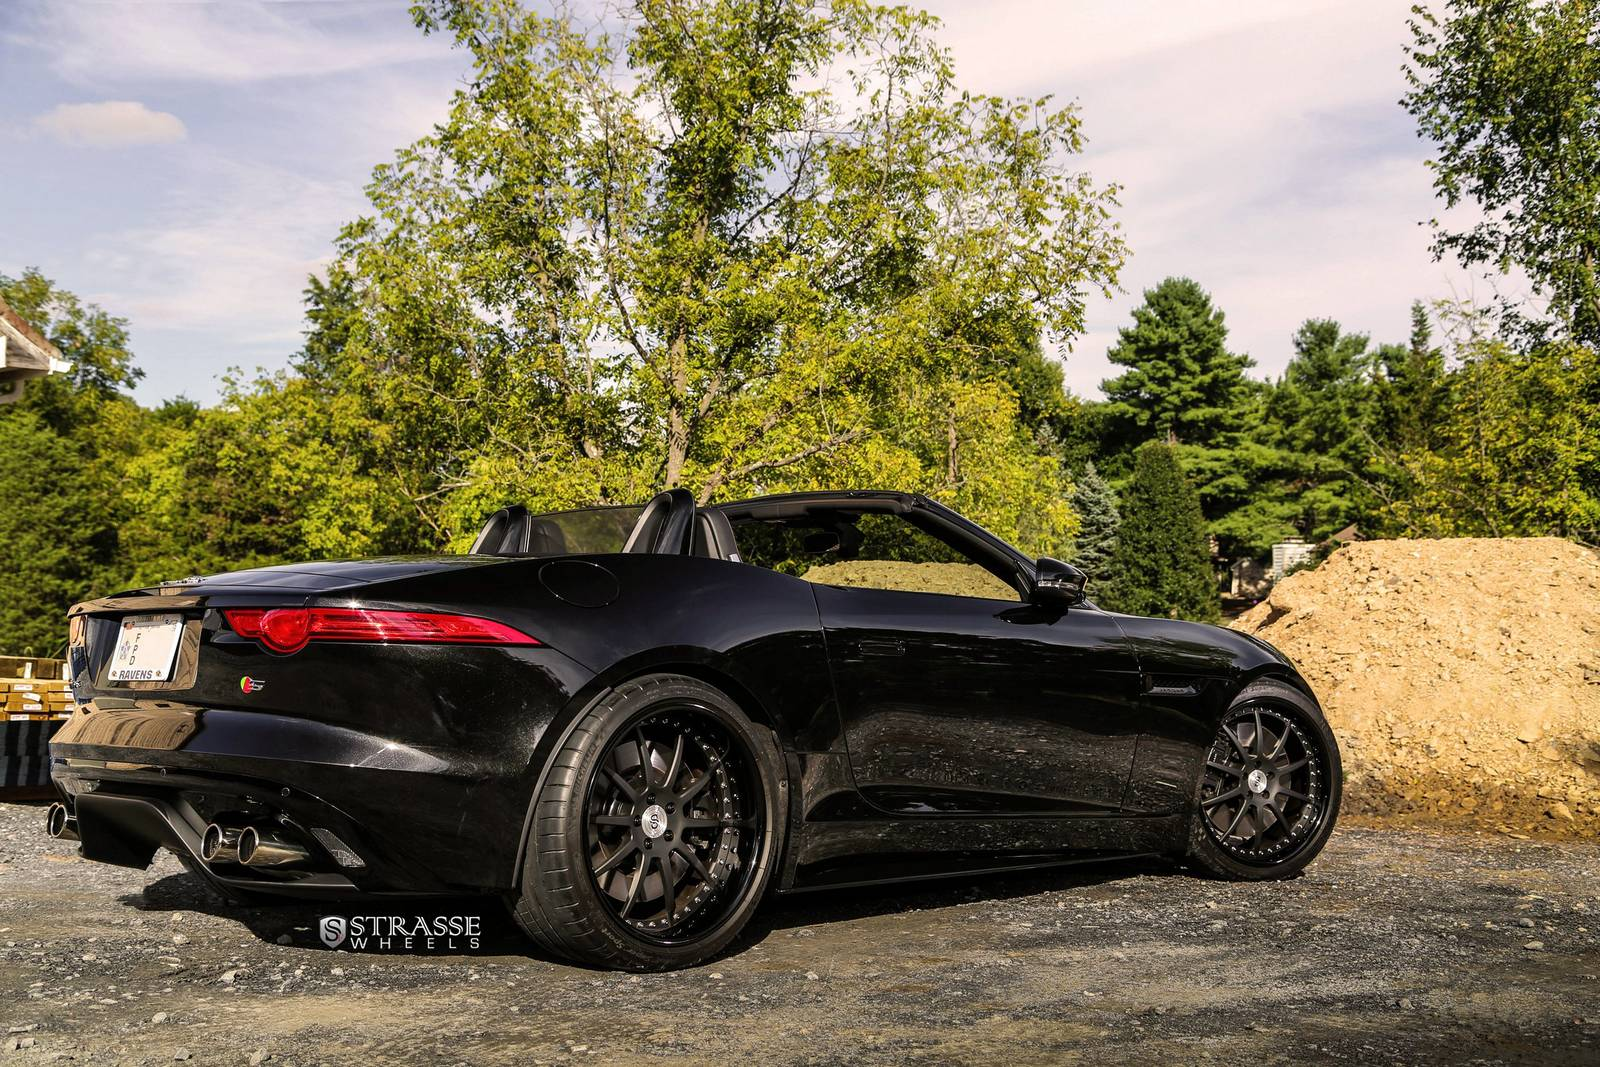 Metallic Black Jaguar F Type V8 S With Strasse Wheels